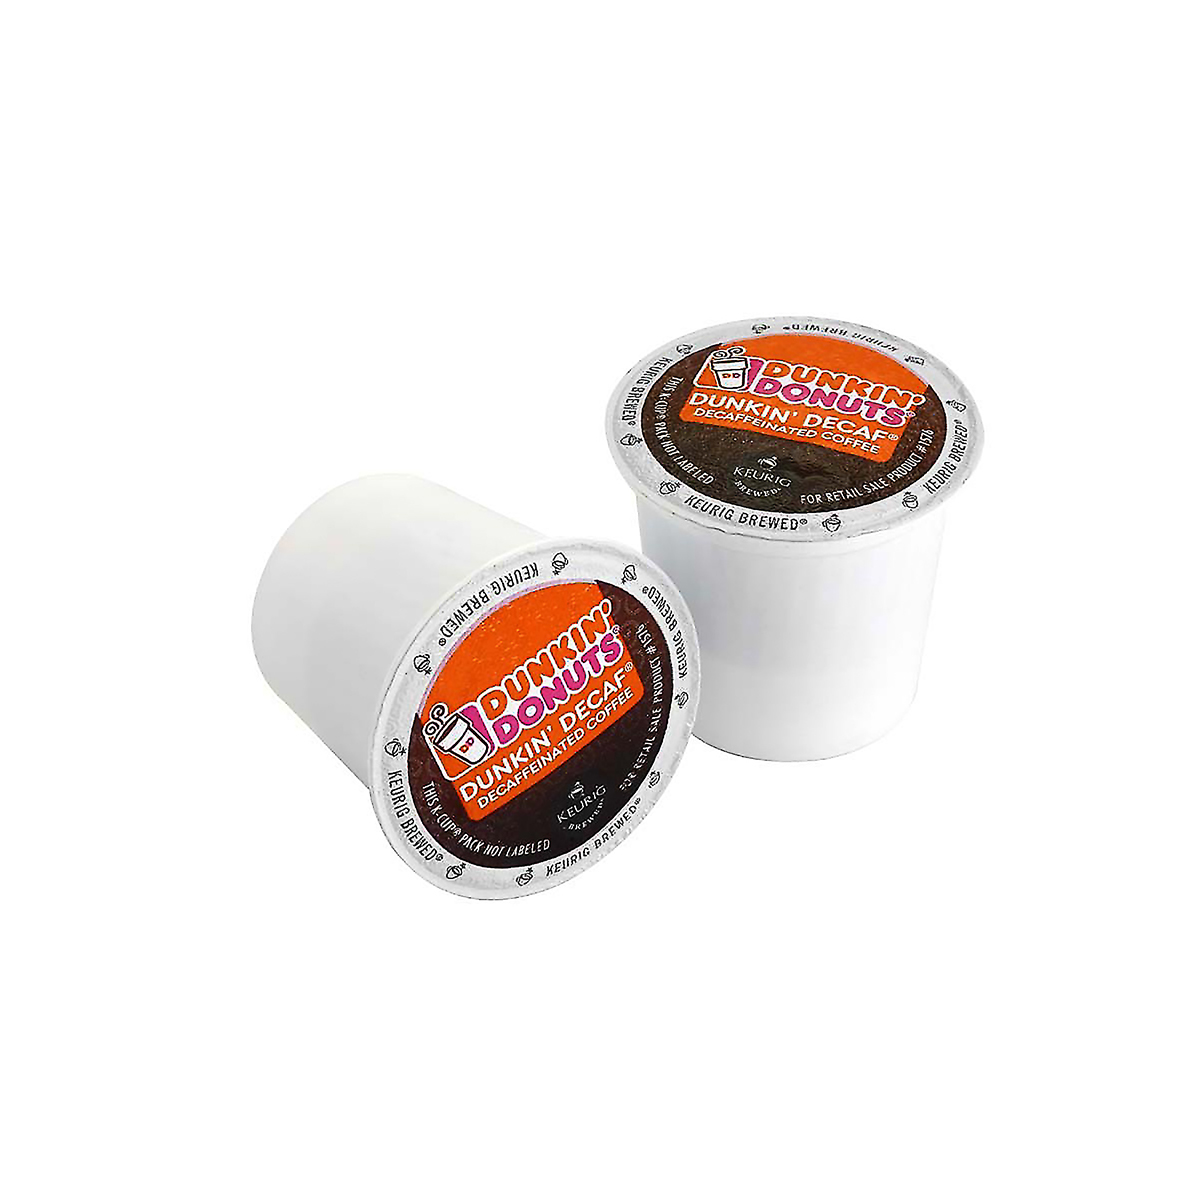 Decaf K-Cup bundle, 24 ct